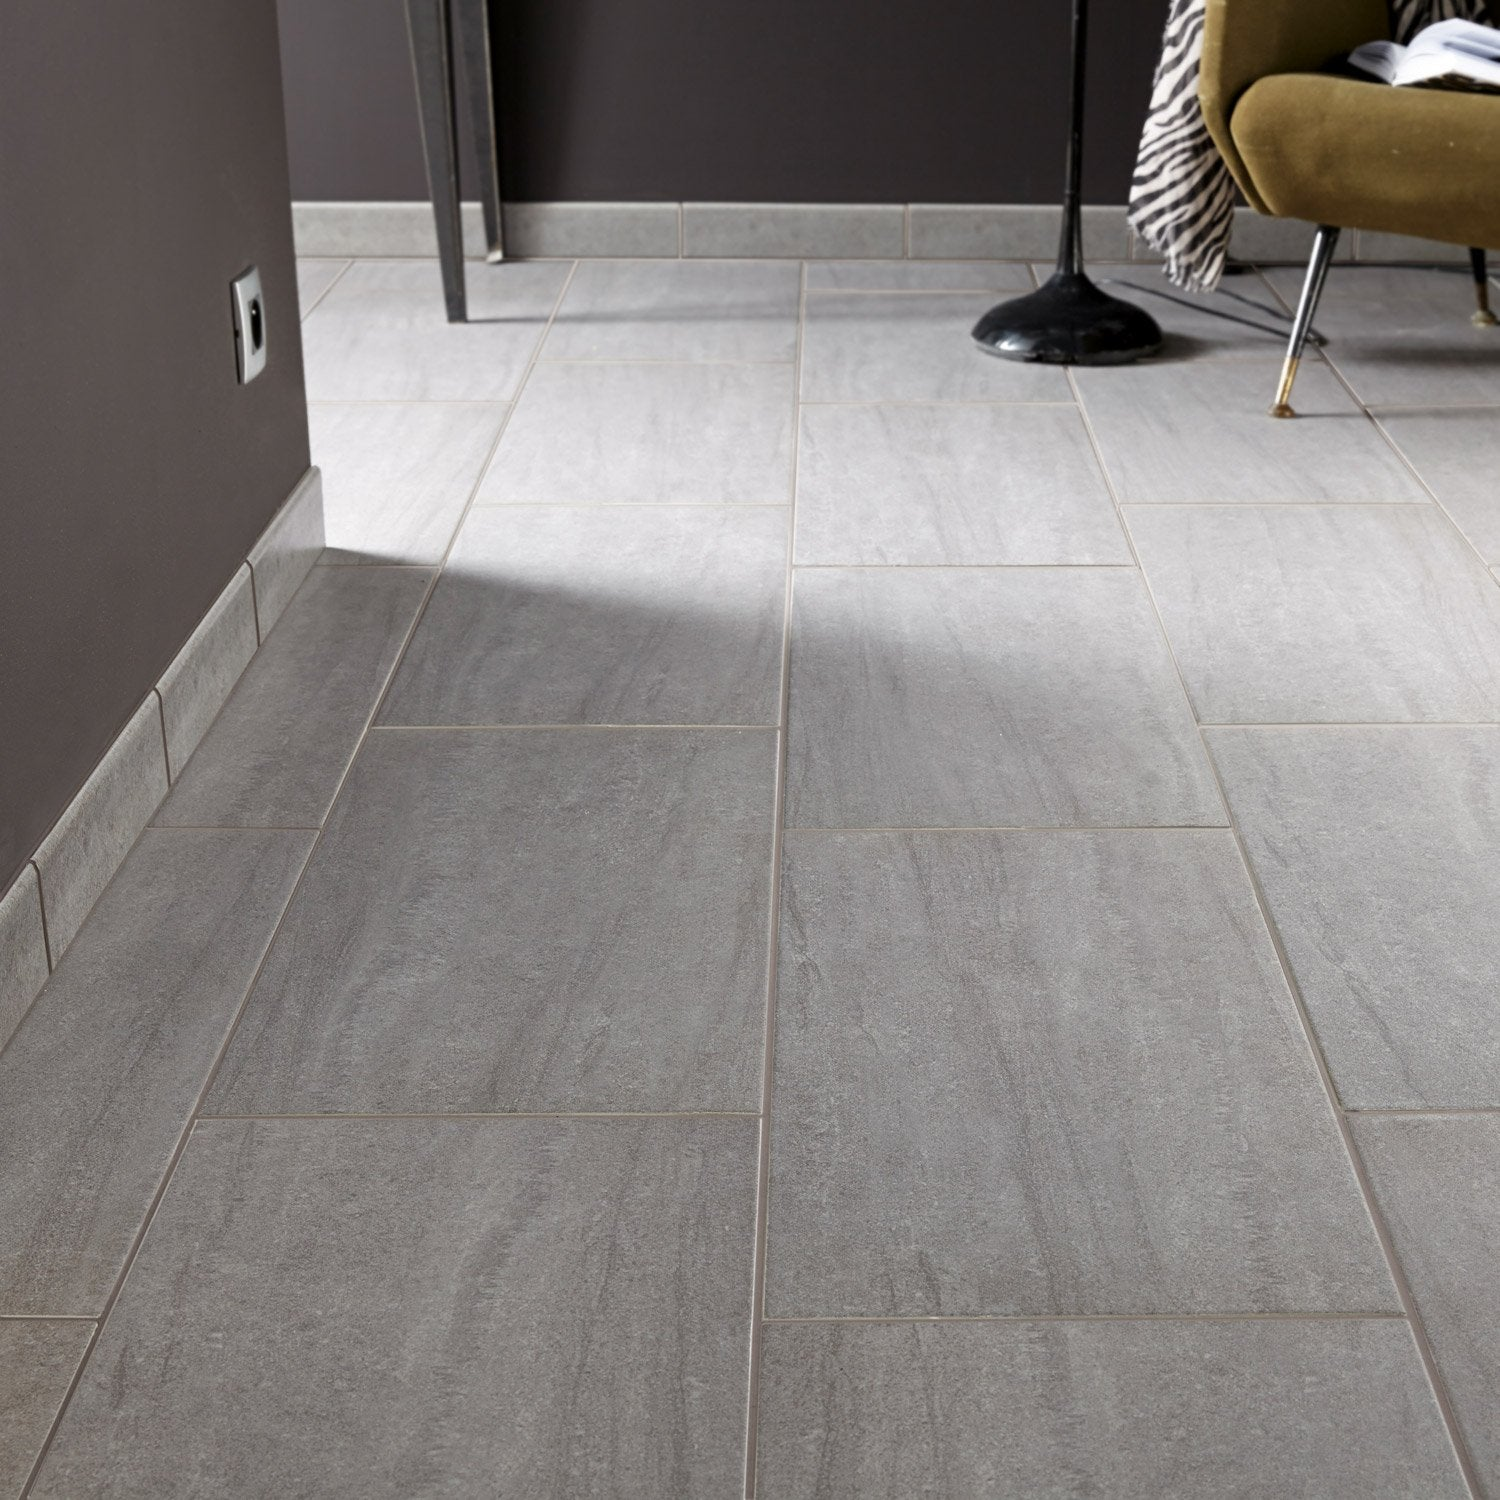 Carrelage sol et mur gris effet pierre trevise x for Carrelage clipsable leroy merlin